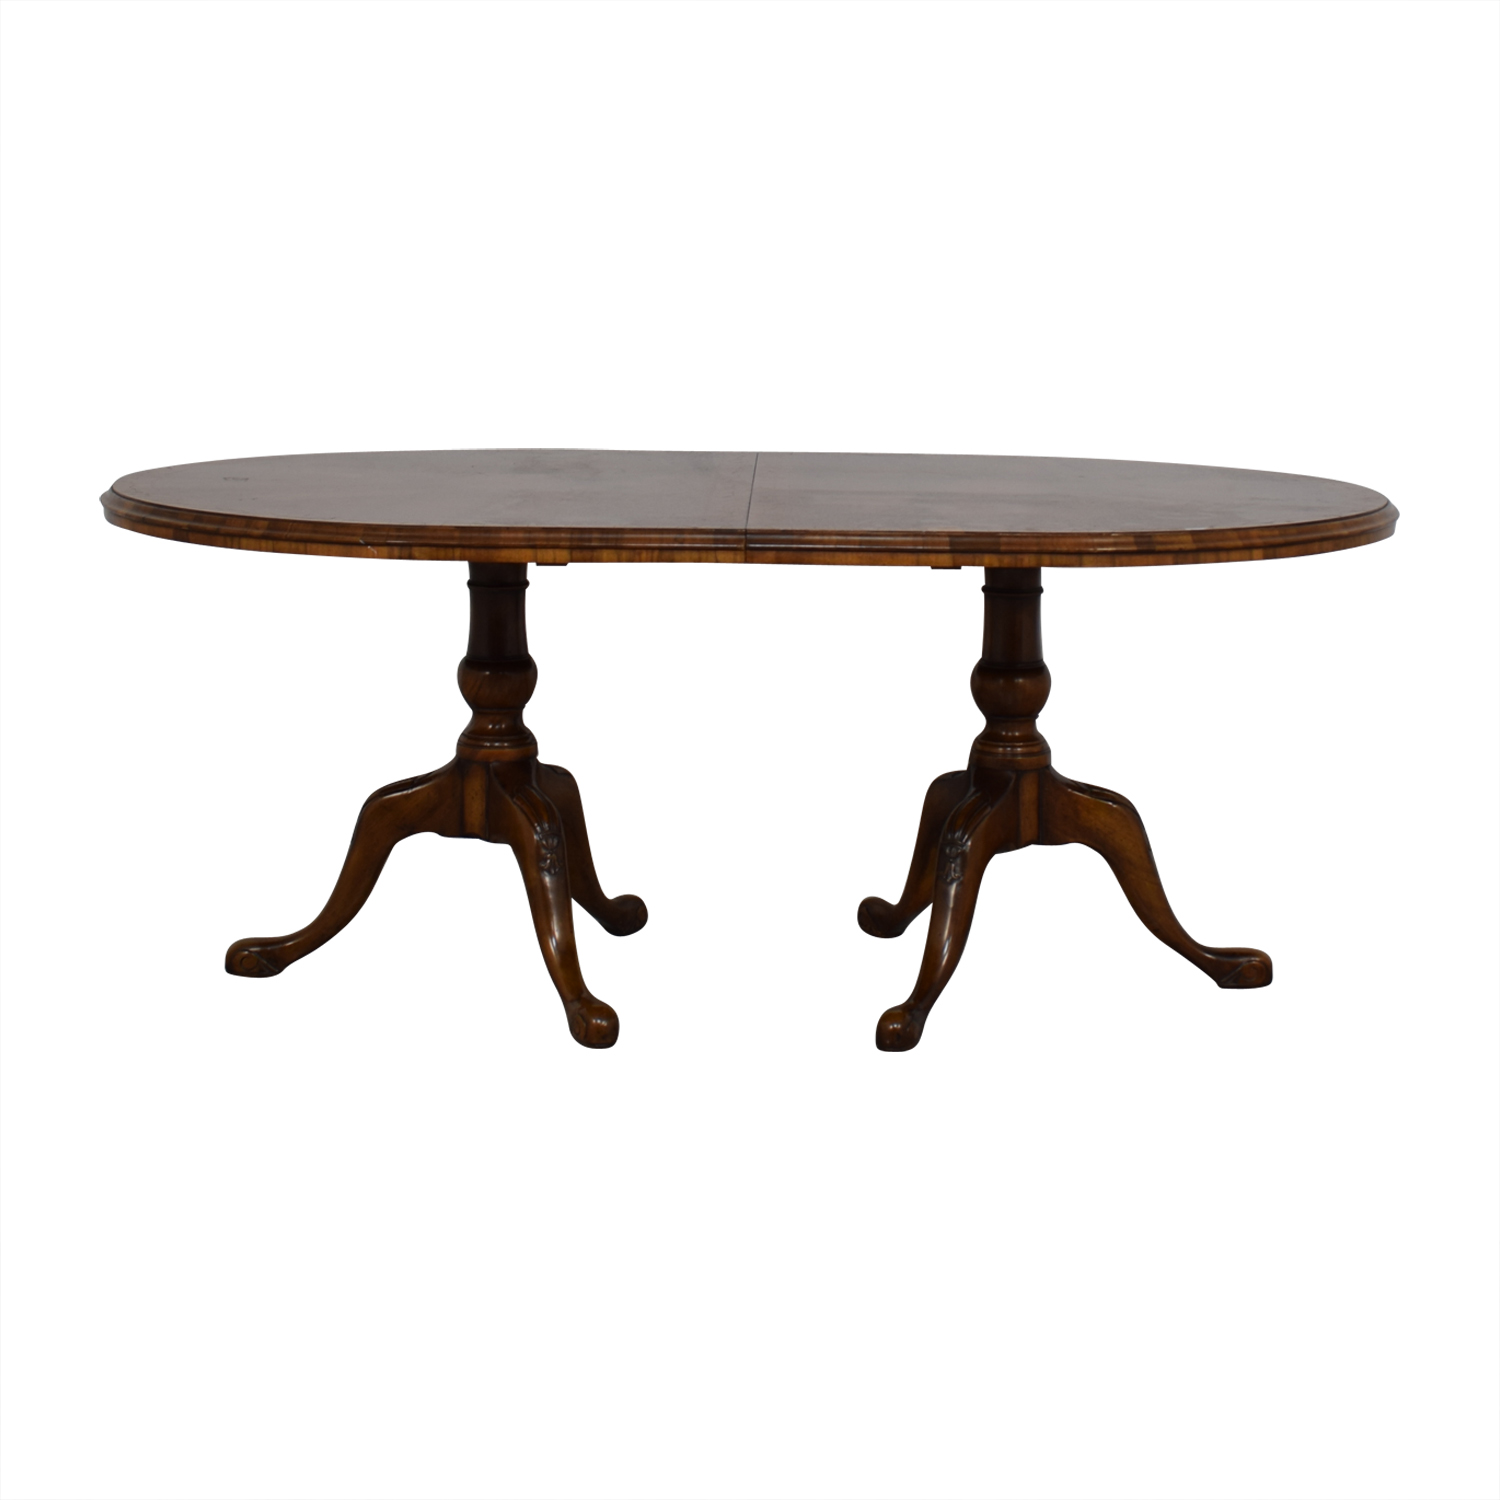 Wood & Hogan Wood and Hogan Expandable Dining Room Table dimensions